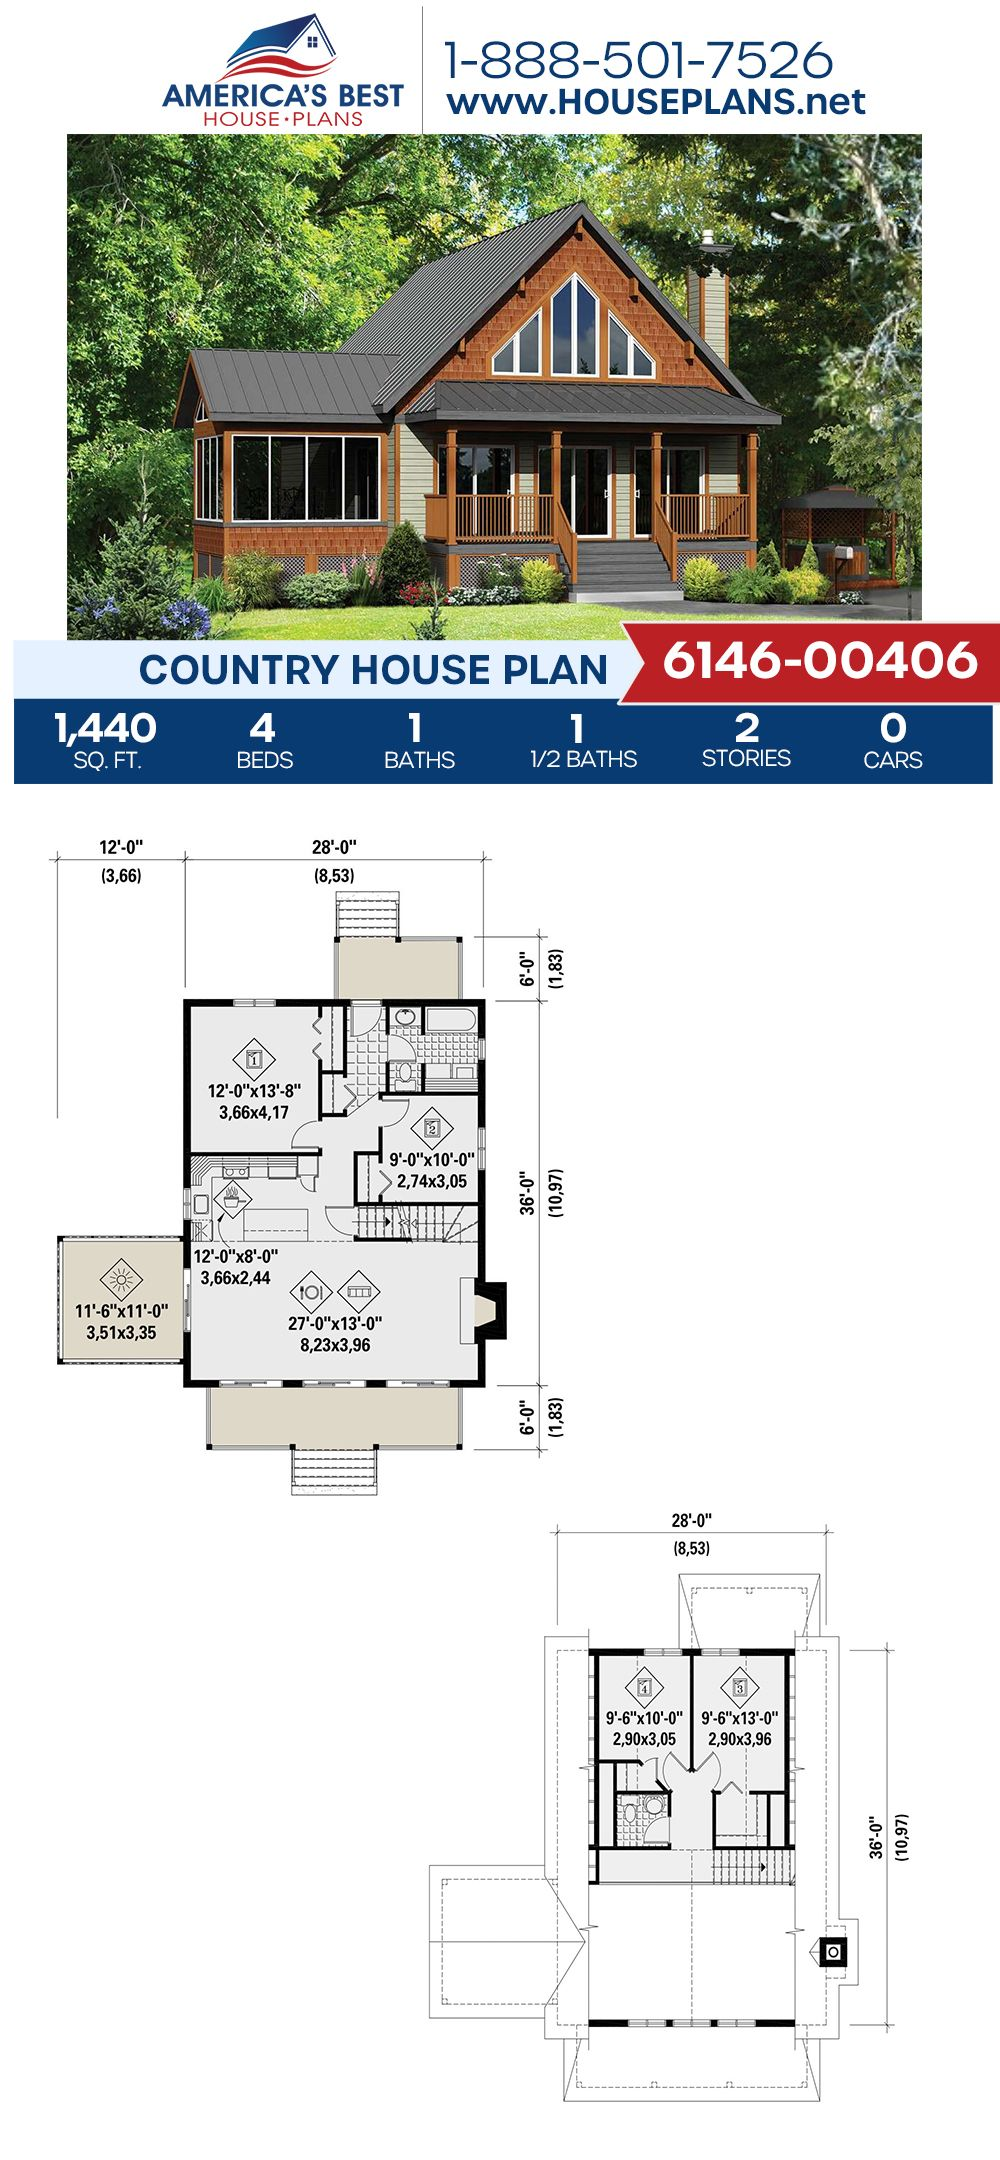 House Plan 6146 00406 Country Plan 1 440 Square Feet 4 Bedrooms 1 5 Bathrooms Country House Plans House Plans House Floor Plans